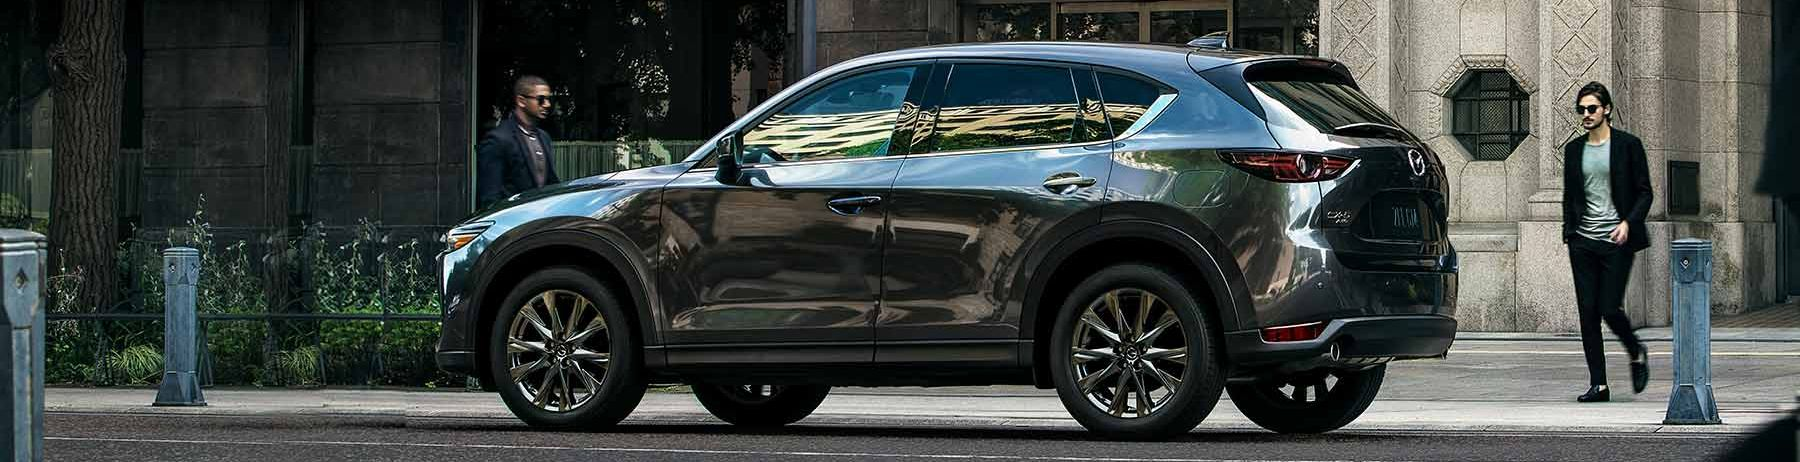 2019 Mazda CX-5 for Sale near Bristol, TN